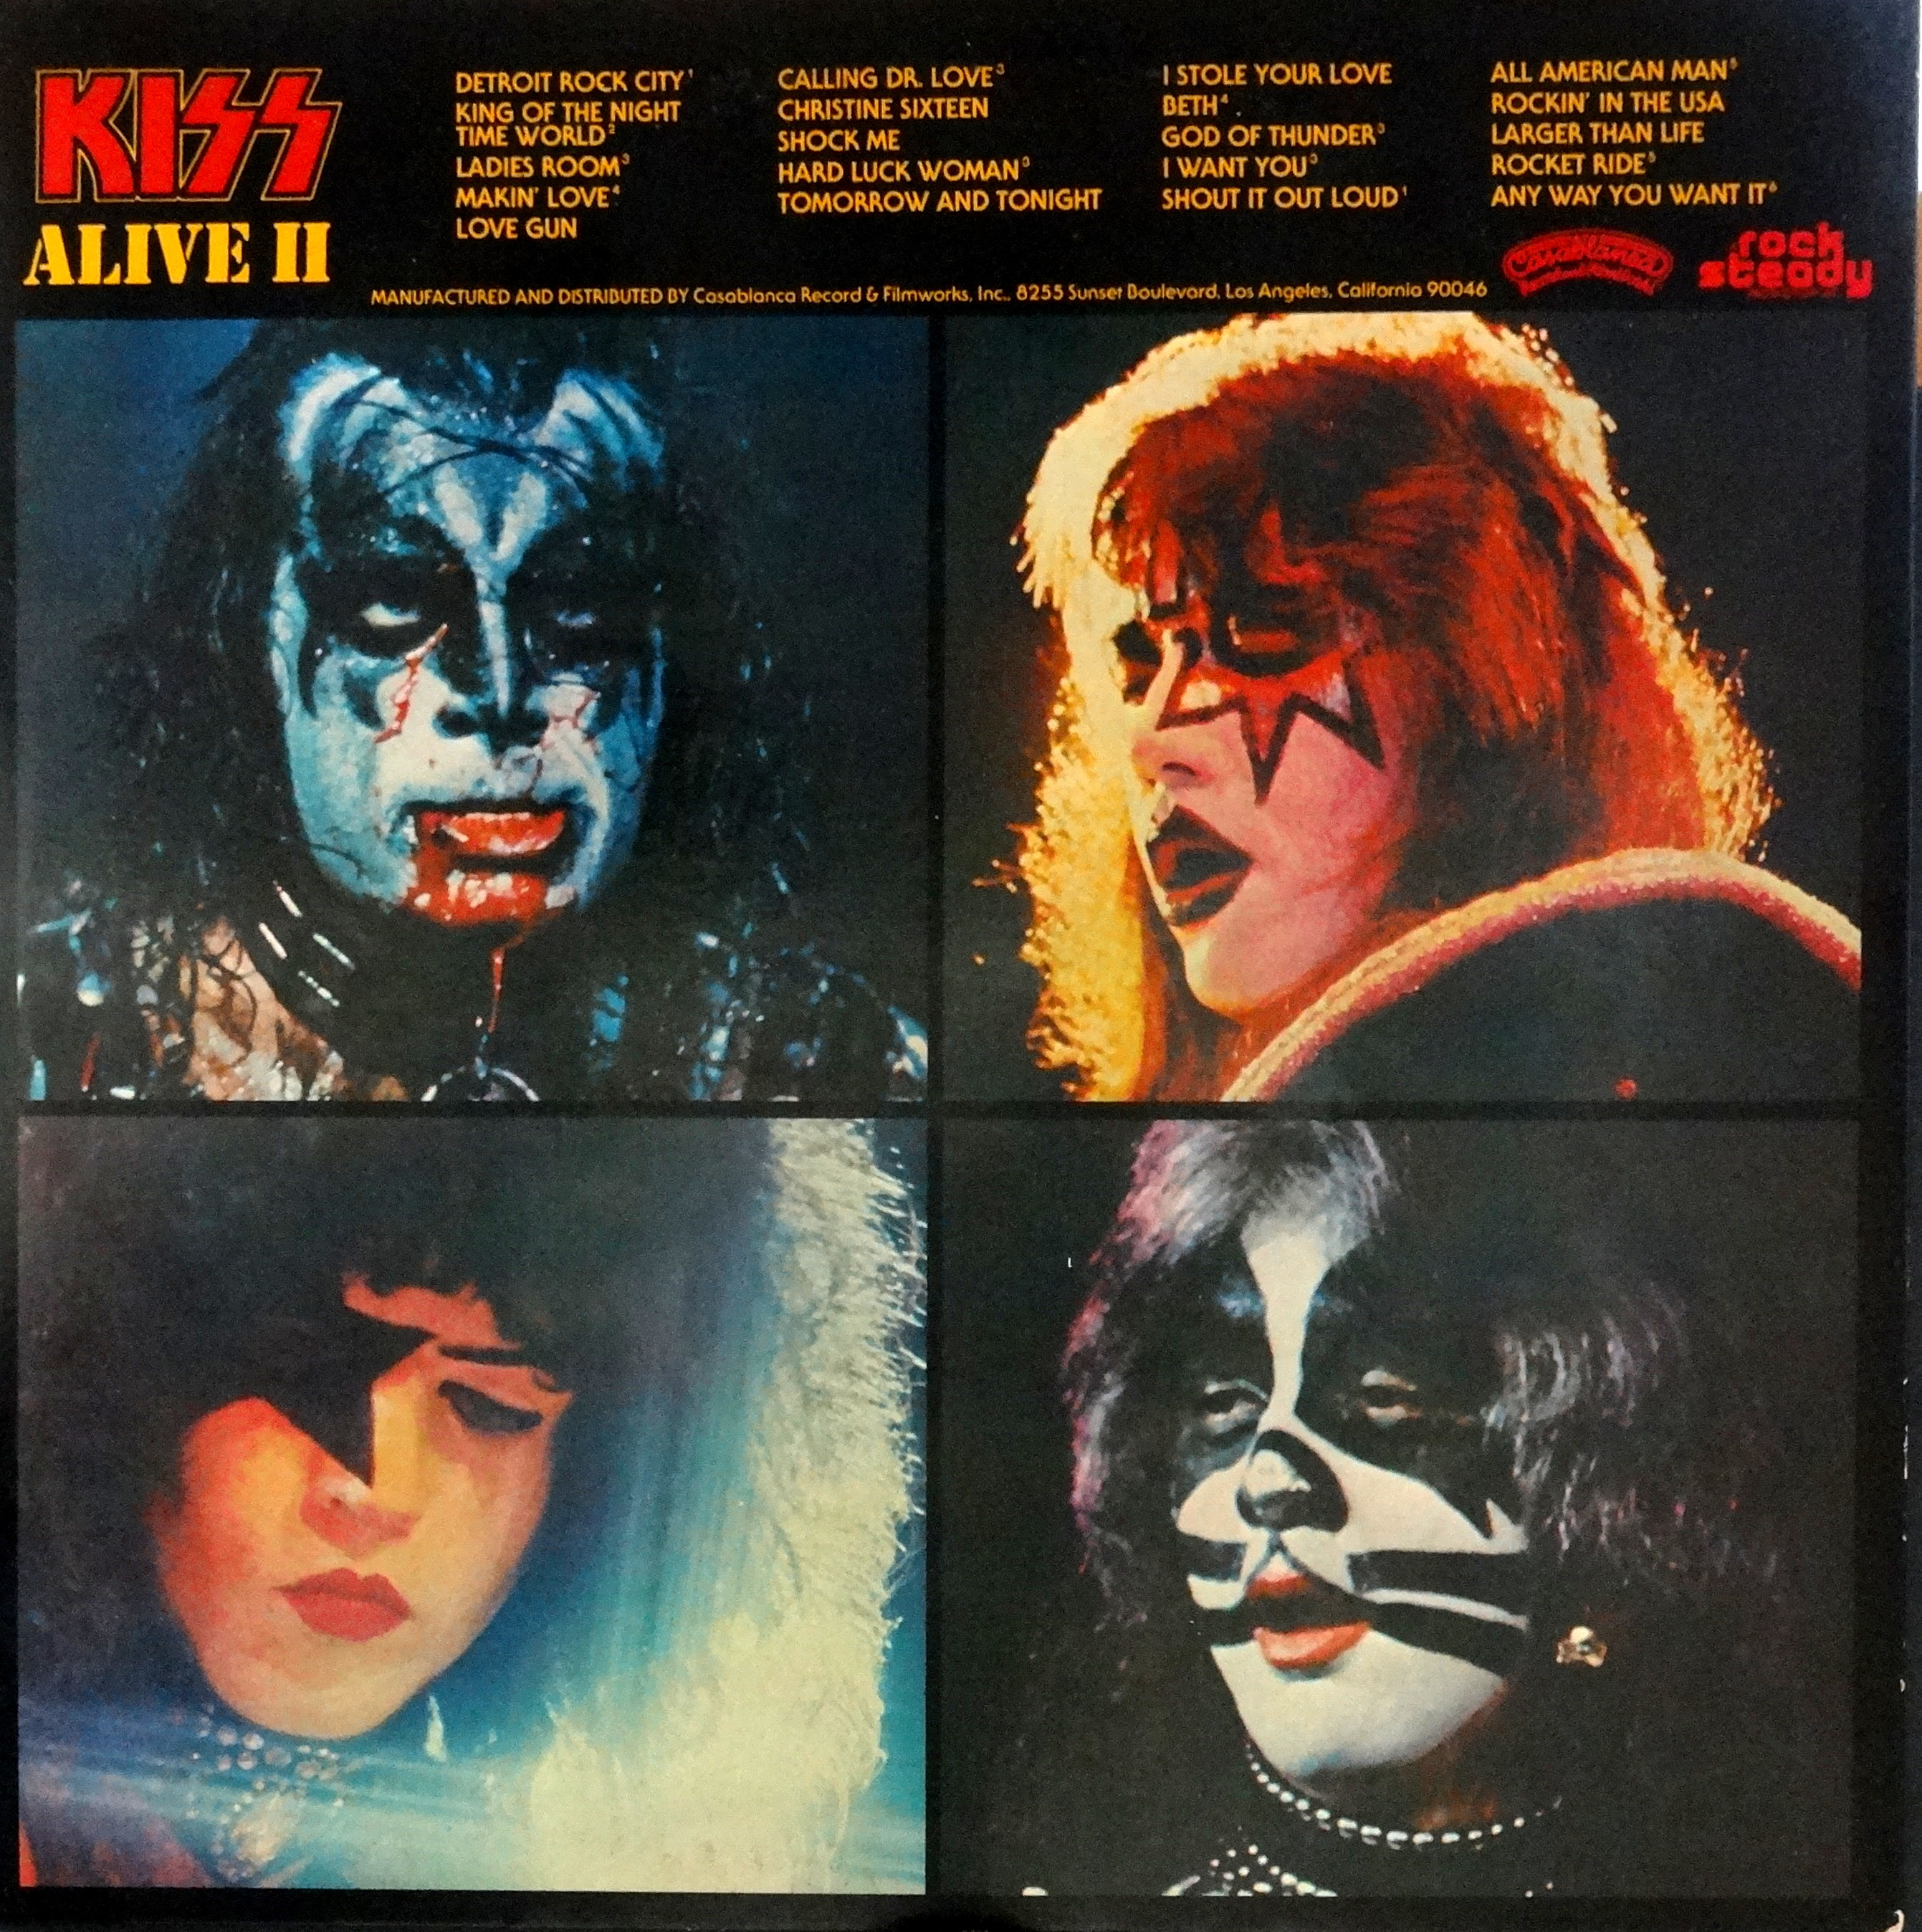 alive ii and kiss Following the success of alive i, kiss came up with alive ii, a set consisting of 20 songs, 15 of which were actually recorded live in new york city and the.